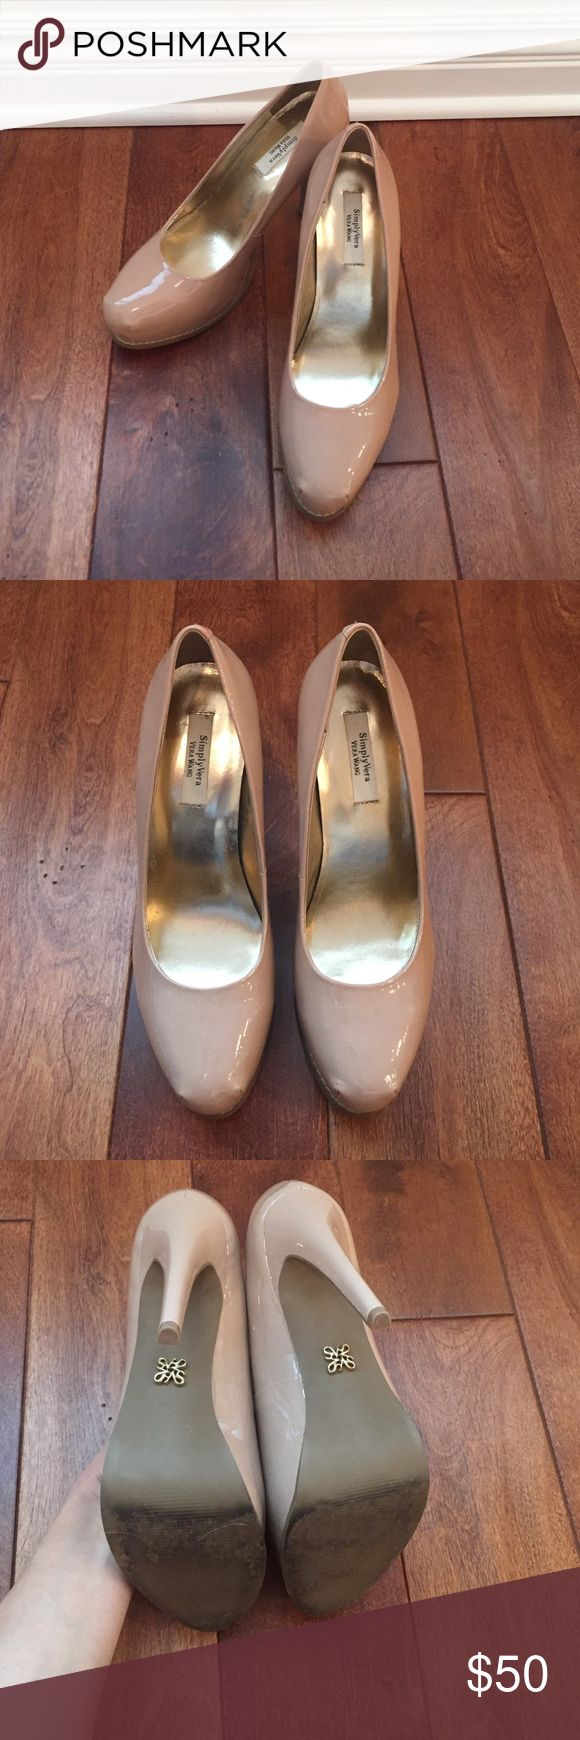 Simply Vera Vera Wang Nude Platform Heels Simply Vera, Vera Wang Nude Platform Heels, size 8.  Excellent used condition. One small imperfection on the right heel, see photos. Simply Vera Vera Wang Shoes Heels